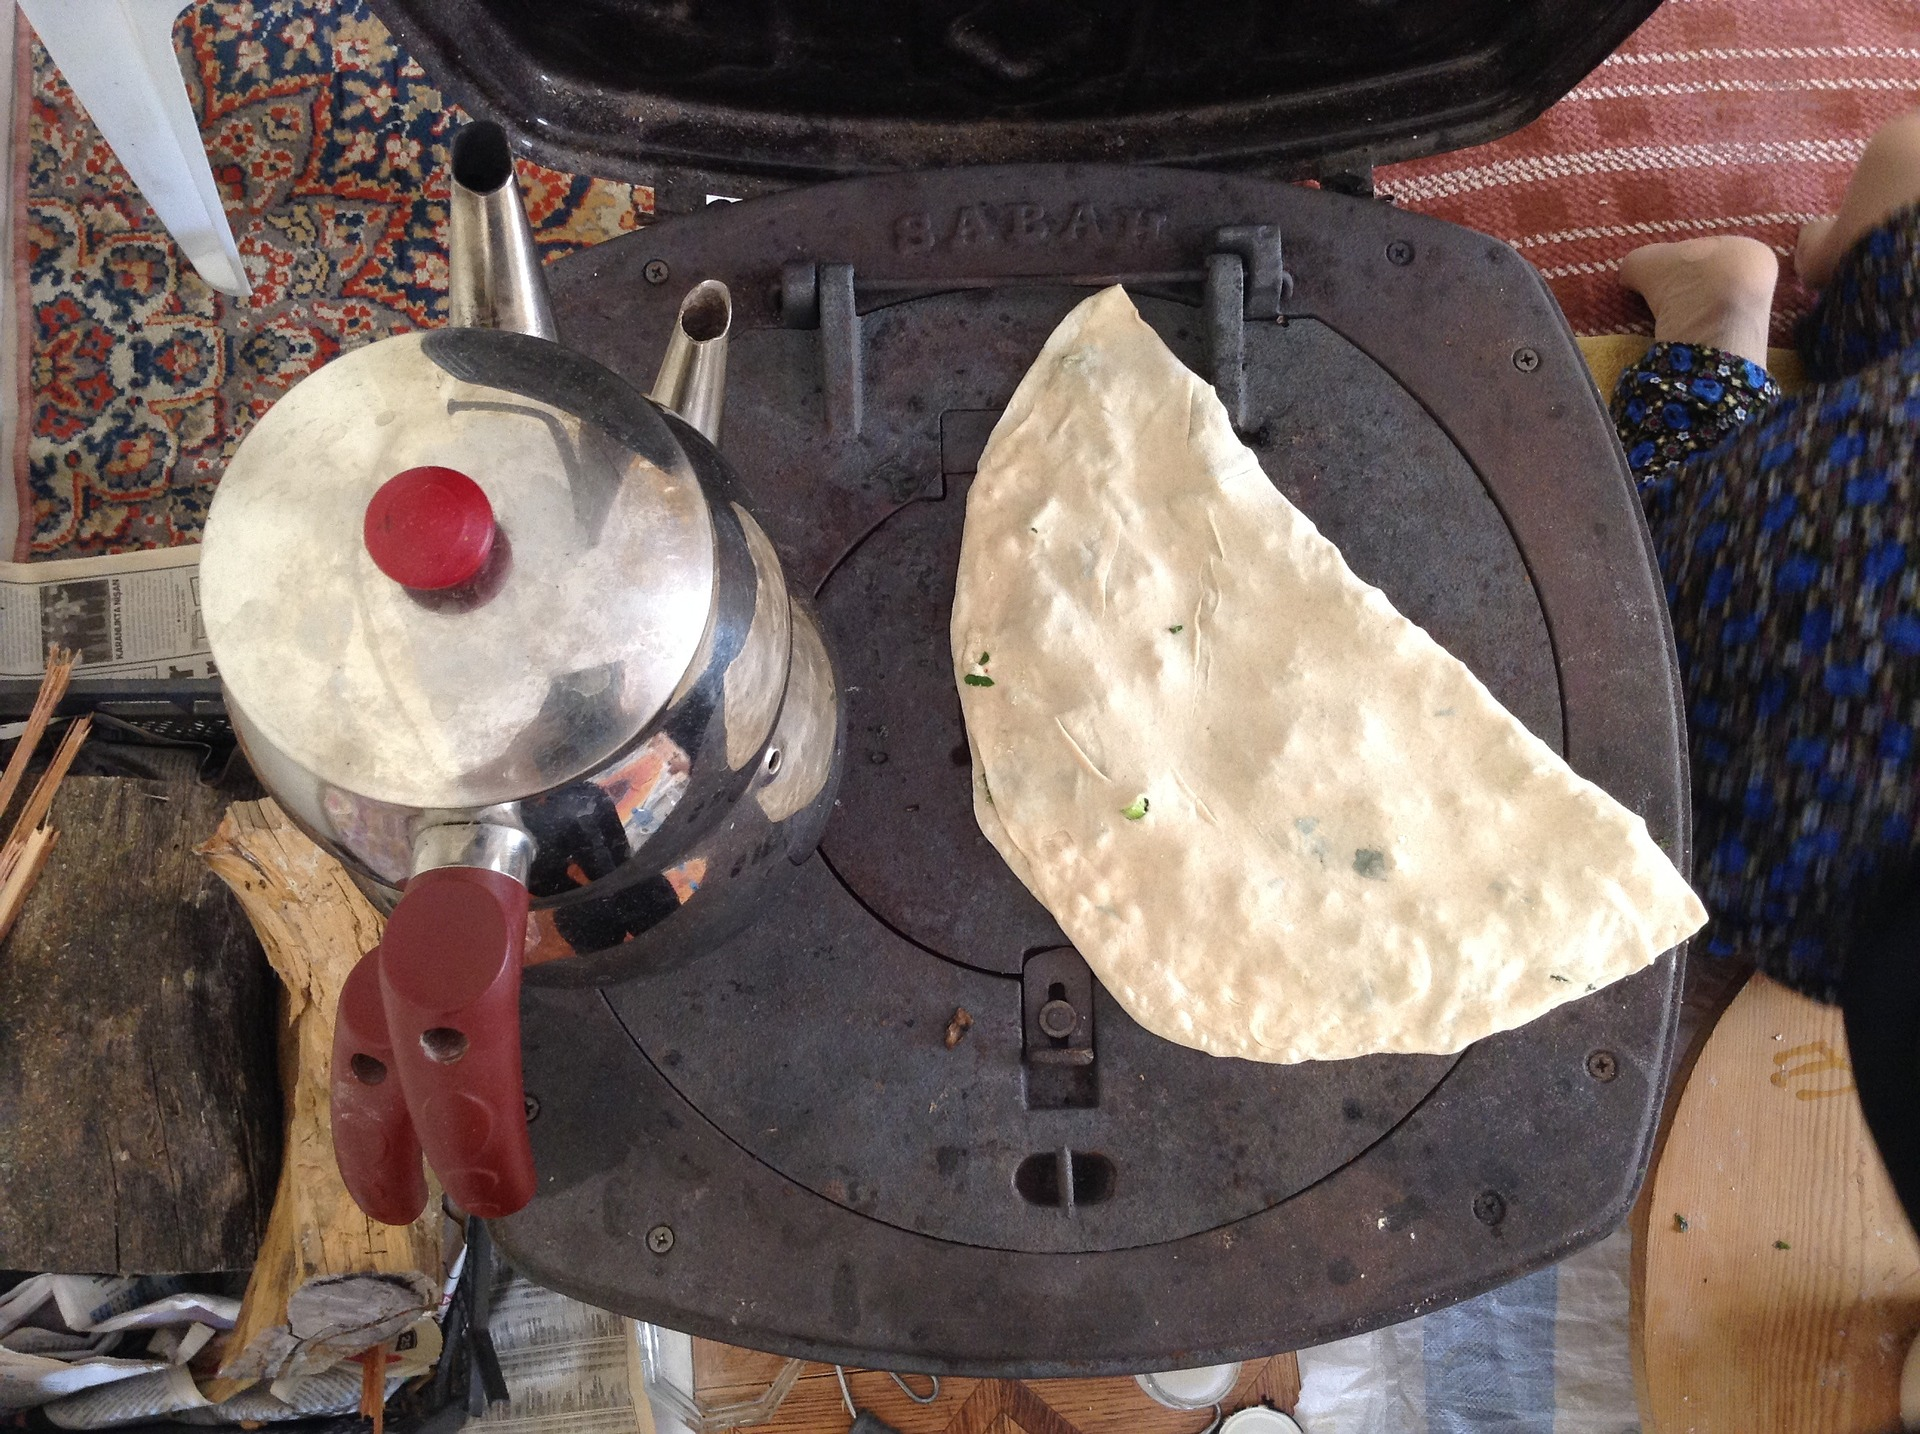 Gozleme is a Turkish snack cooked on a hot griddle | Pixabay